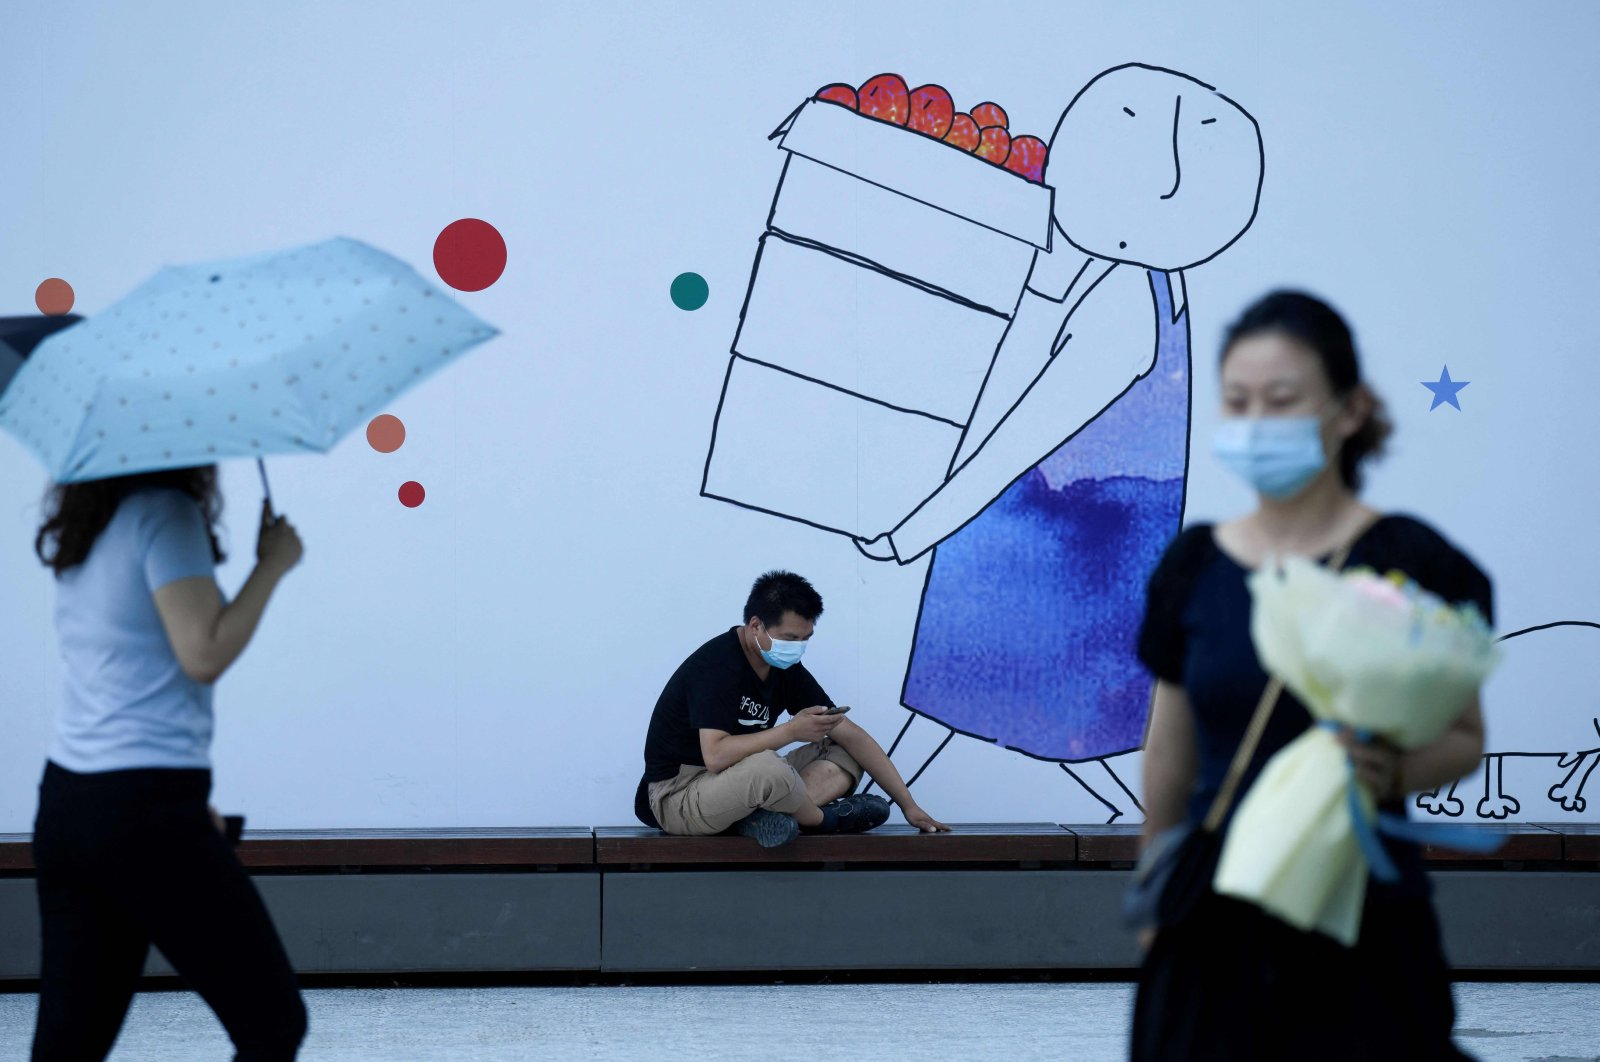 A man wearing a face mask uses his mobile phone in front of an advertisement in Beijing, China, Aug. 11, 2020. (AFP Photo)